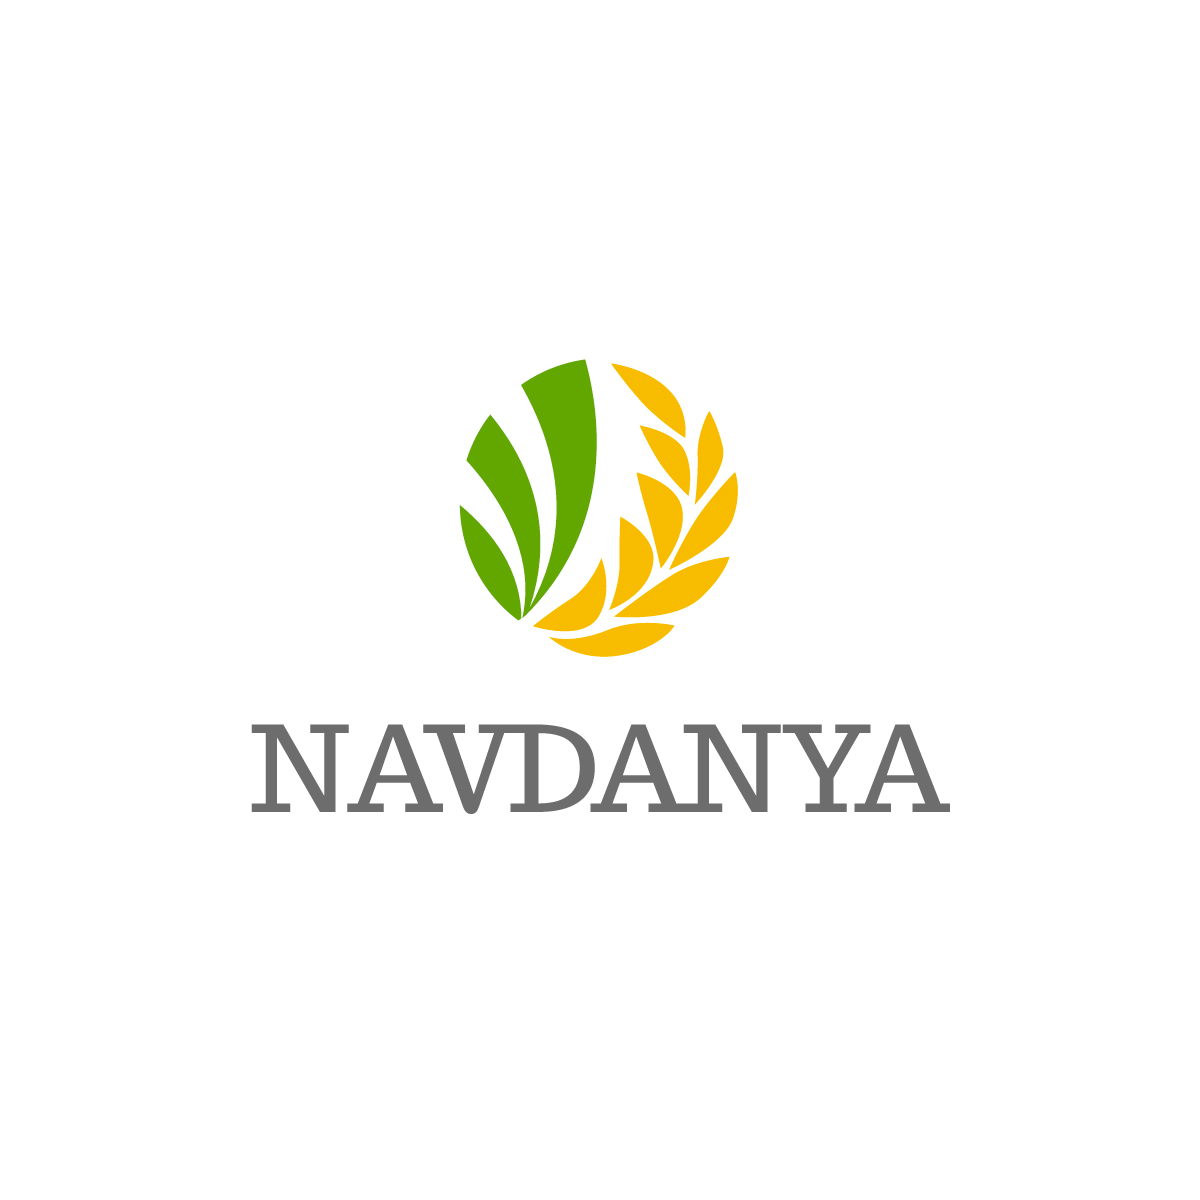 Elegant Playful Business Logo Design For Navdanya By Alexdev